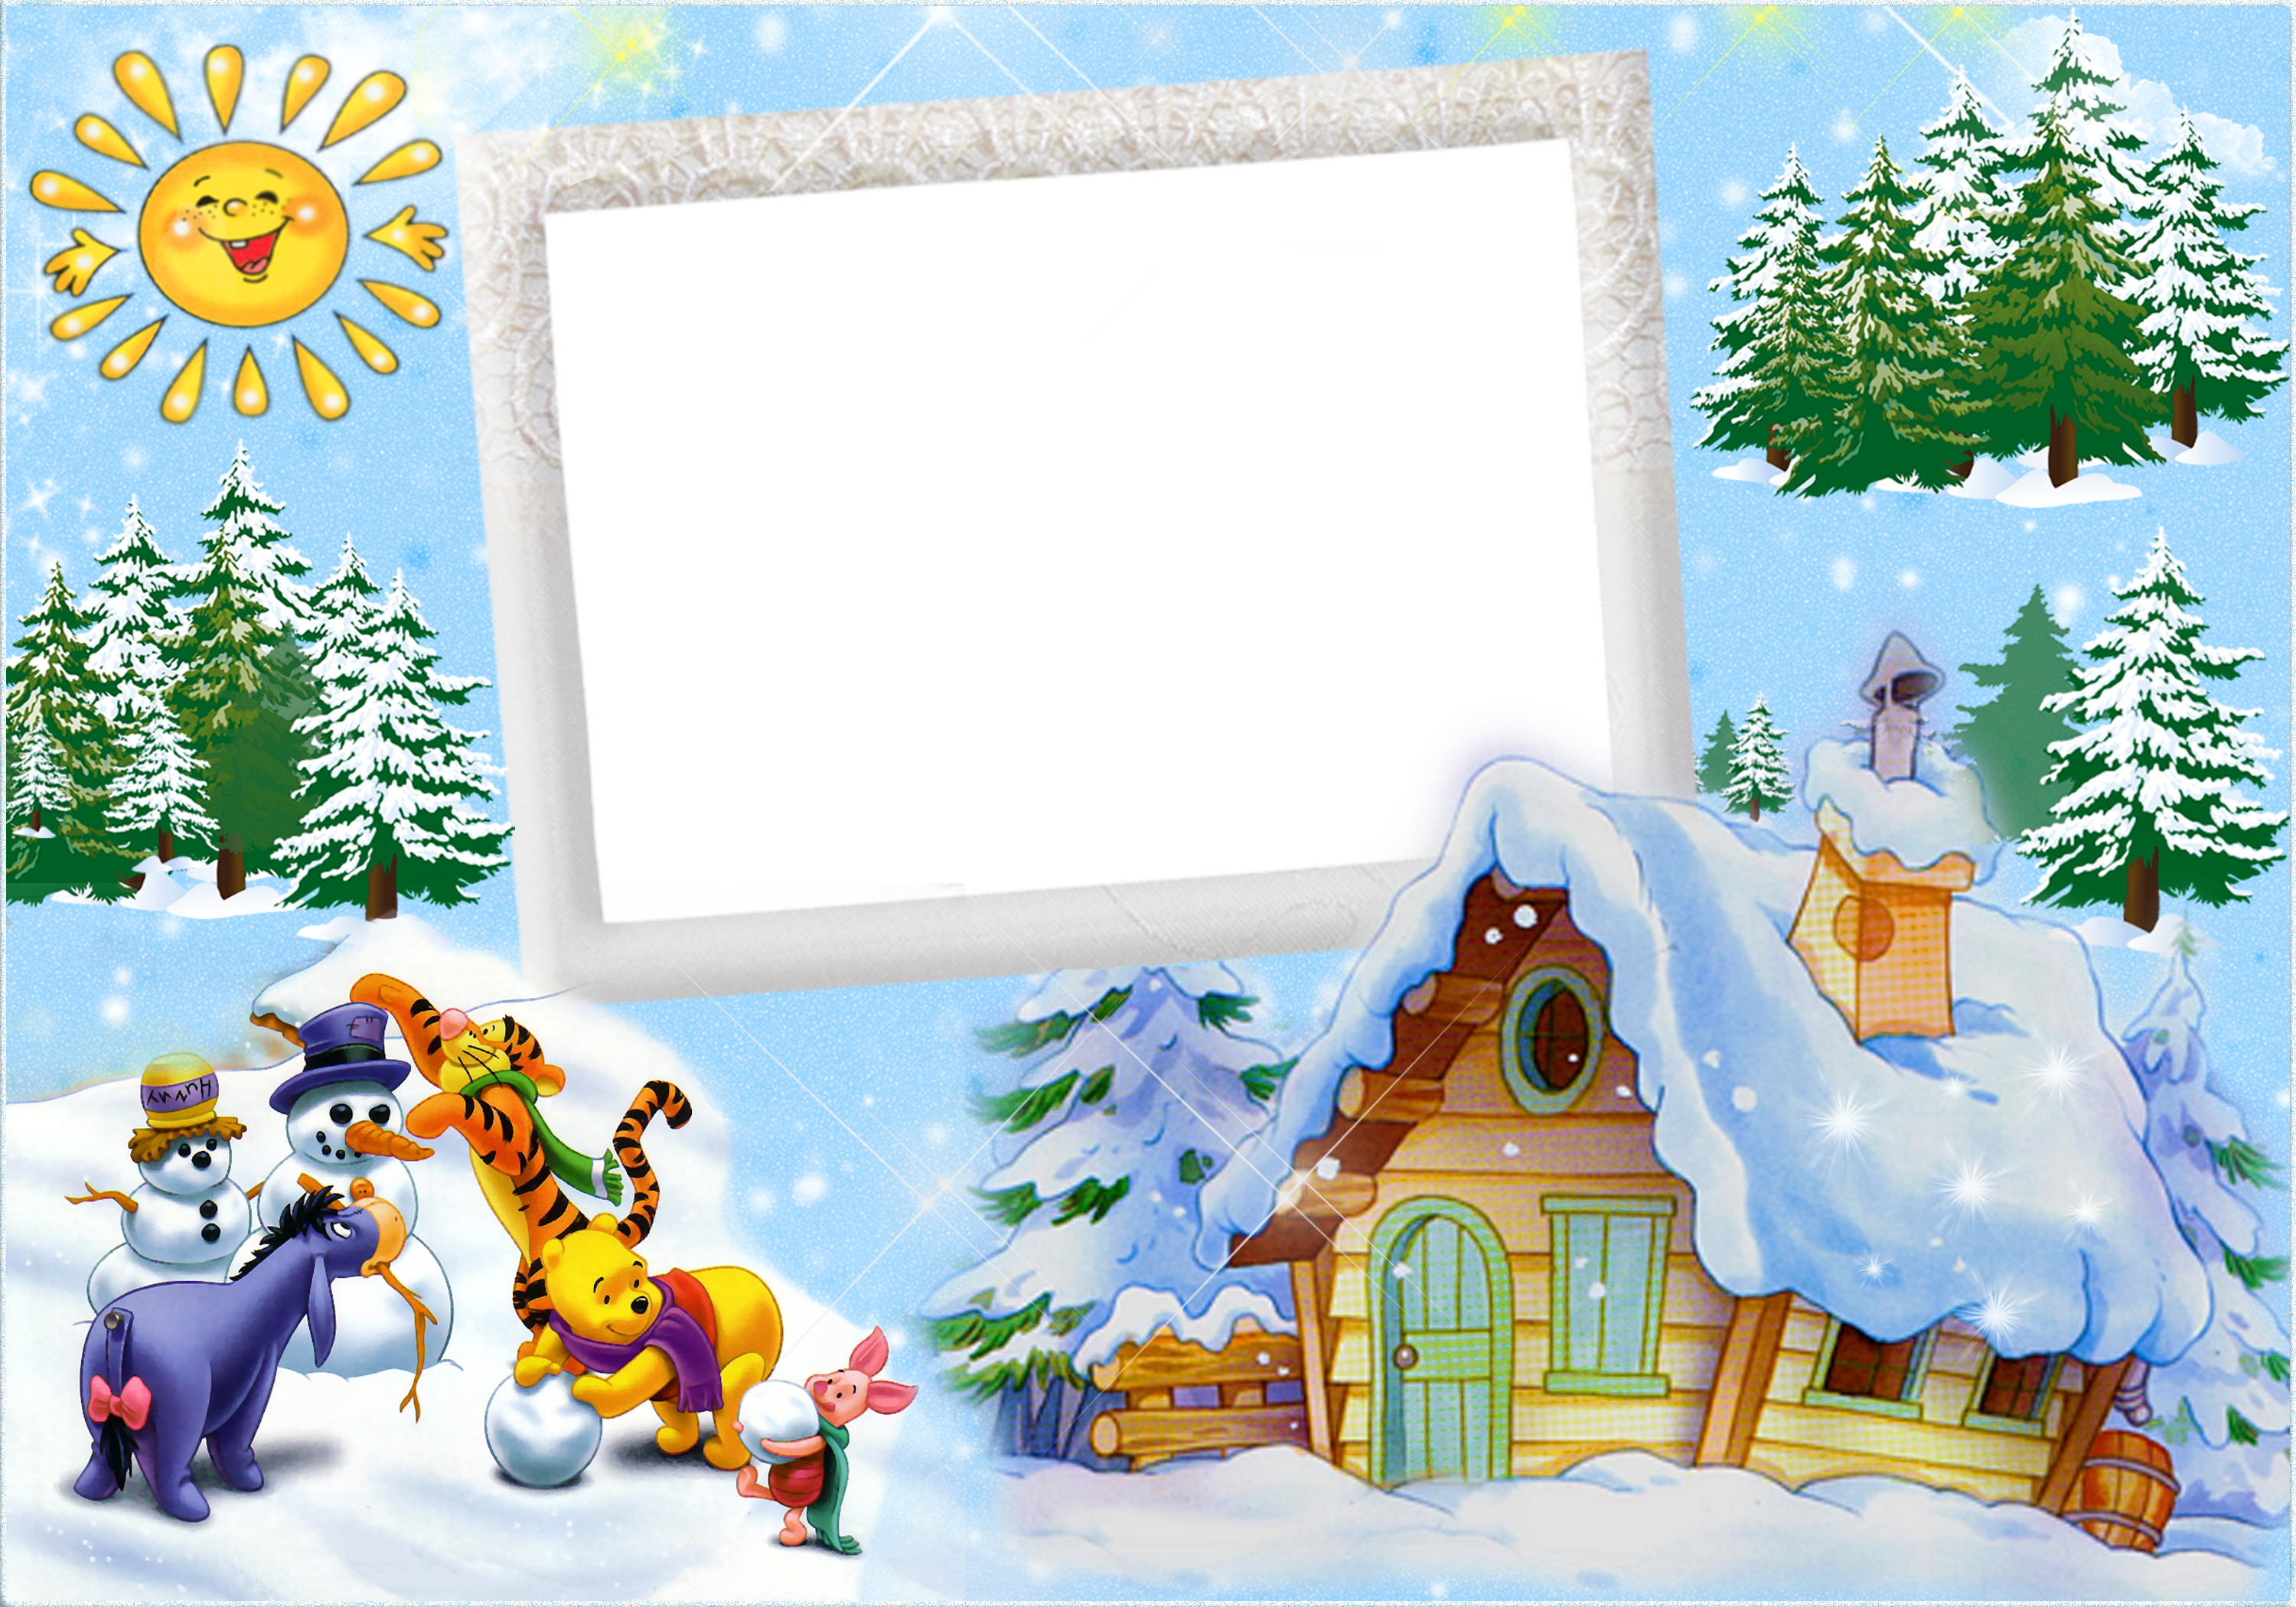 Children's christmas clipart free graphic free stock Christmas Kids Winter Frame with Winnie the Pooh and Friends and ... graphic free stock